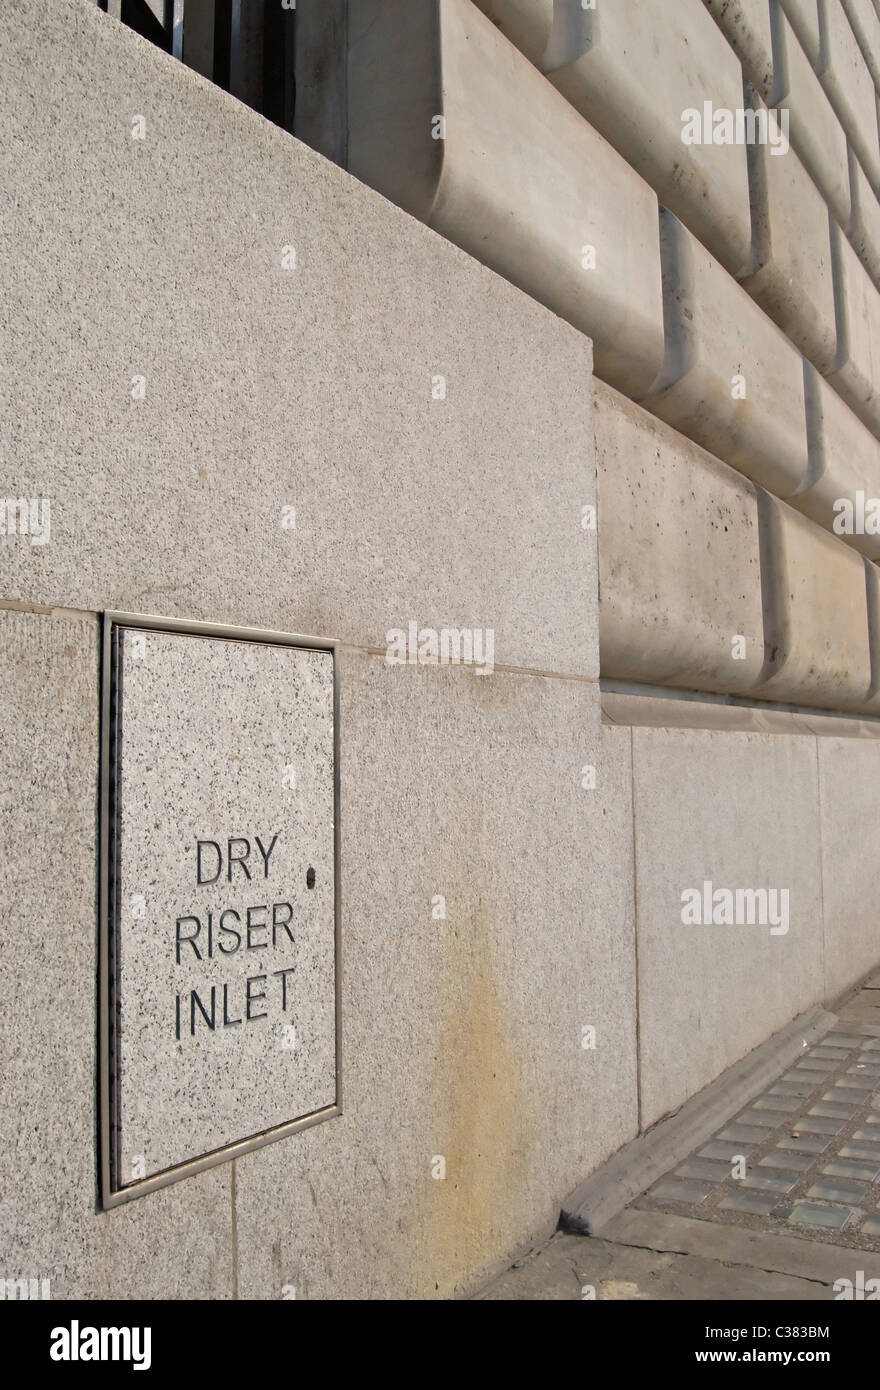 dry riser inlet sign on the front of  unilever house victoria embankment, london, england - Stock Image